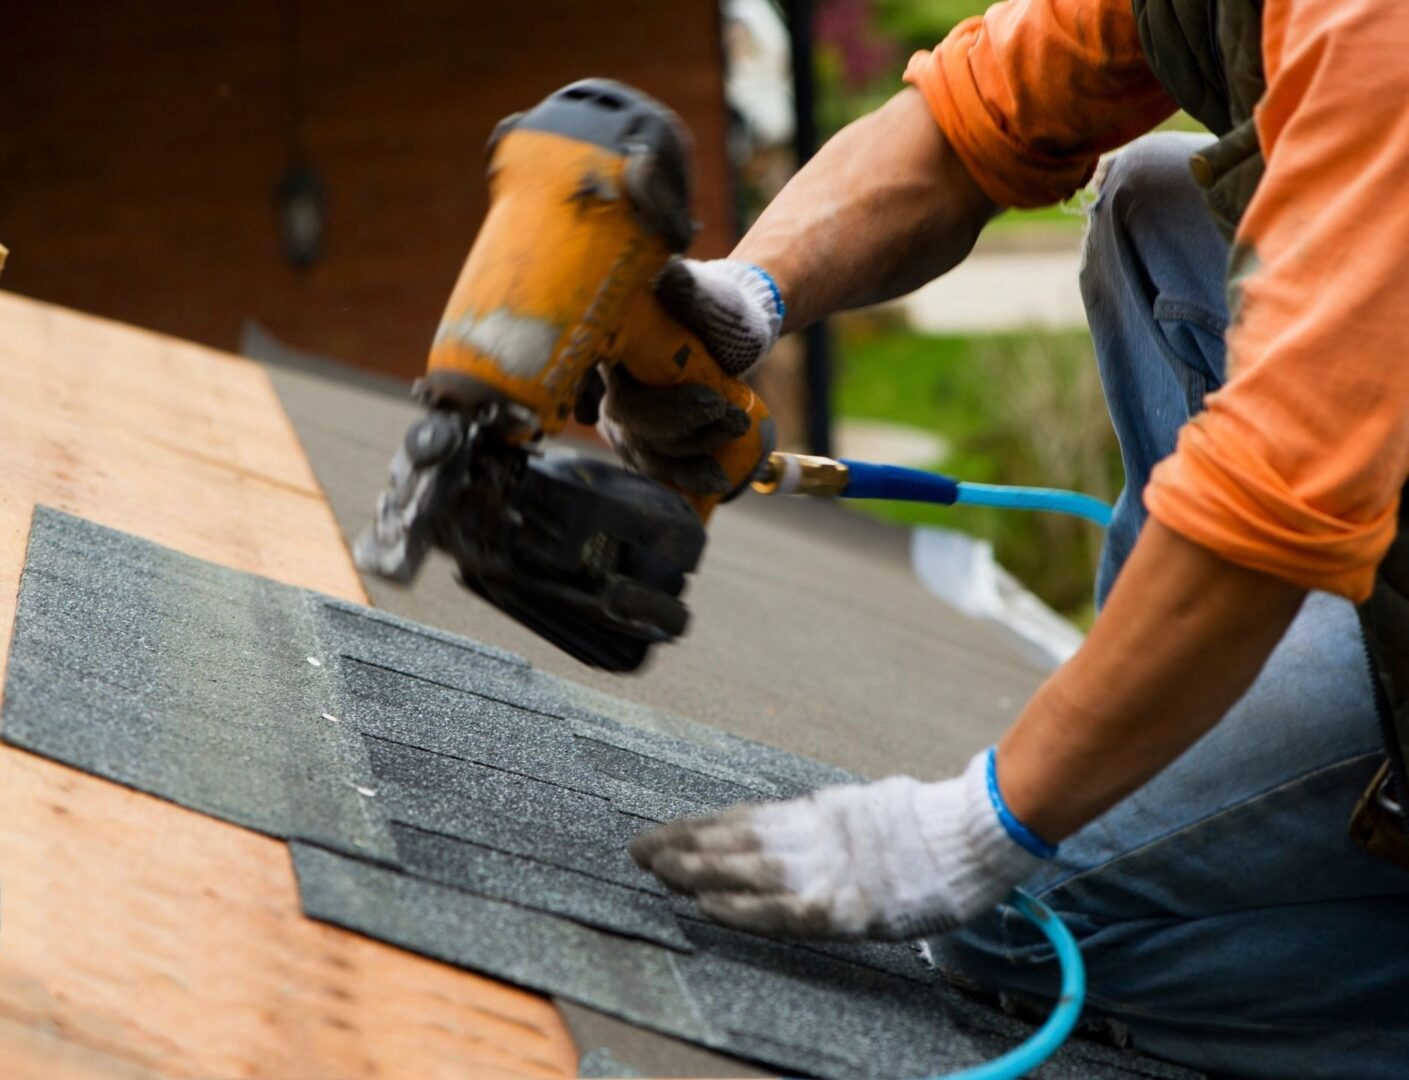 RMC Roofing, Inc